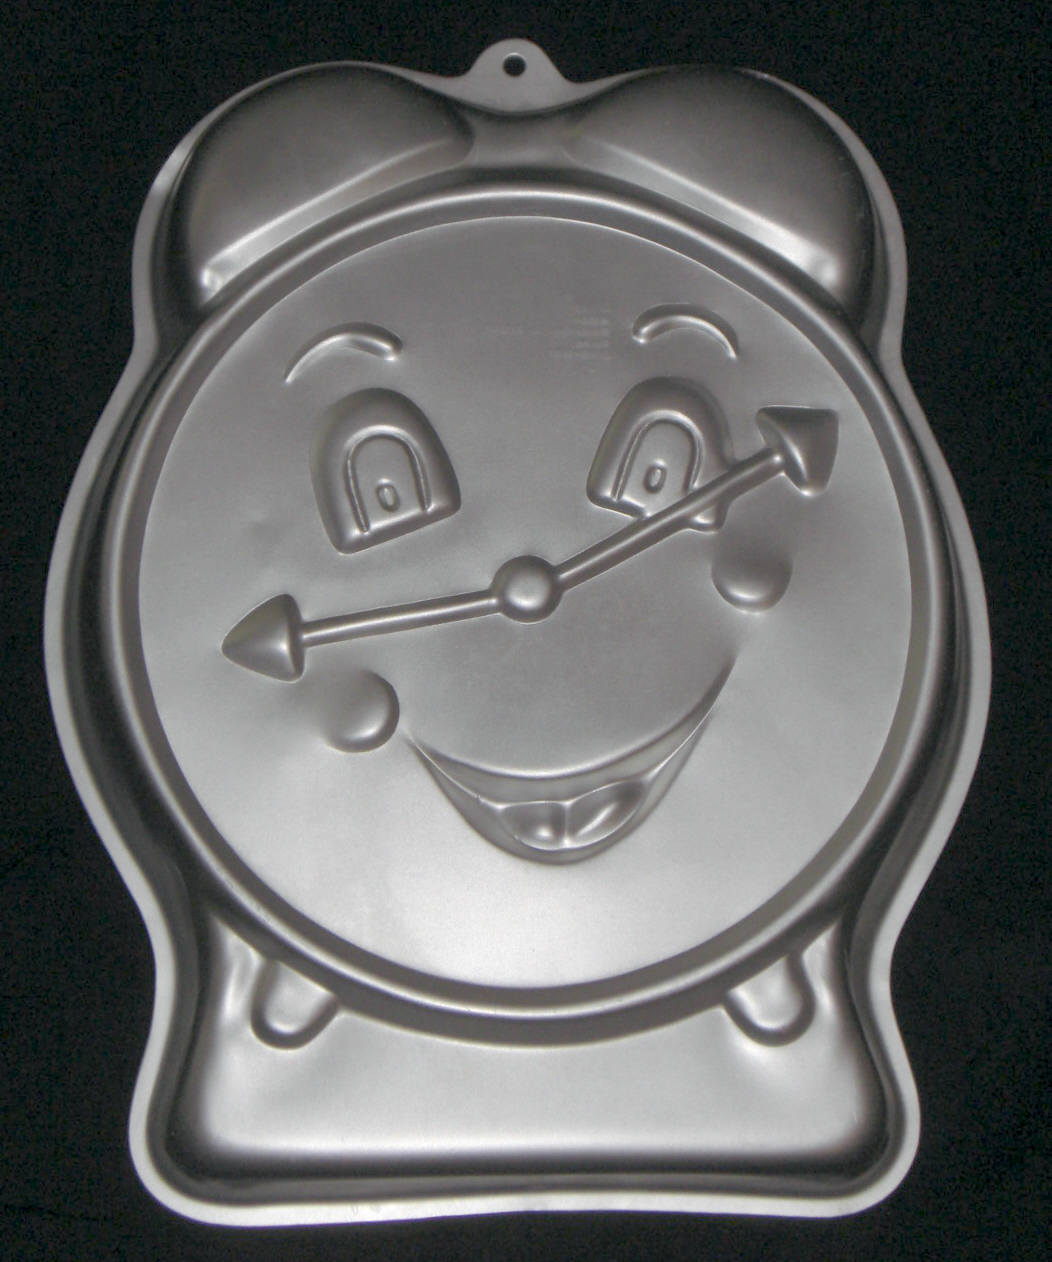 Primary image for 1991 Wilton Party Time Clock Cake Pan Alarm Retirement Bake Mold 2105-9111